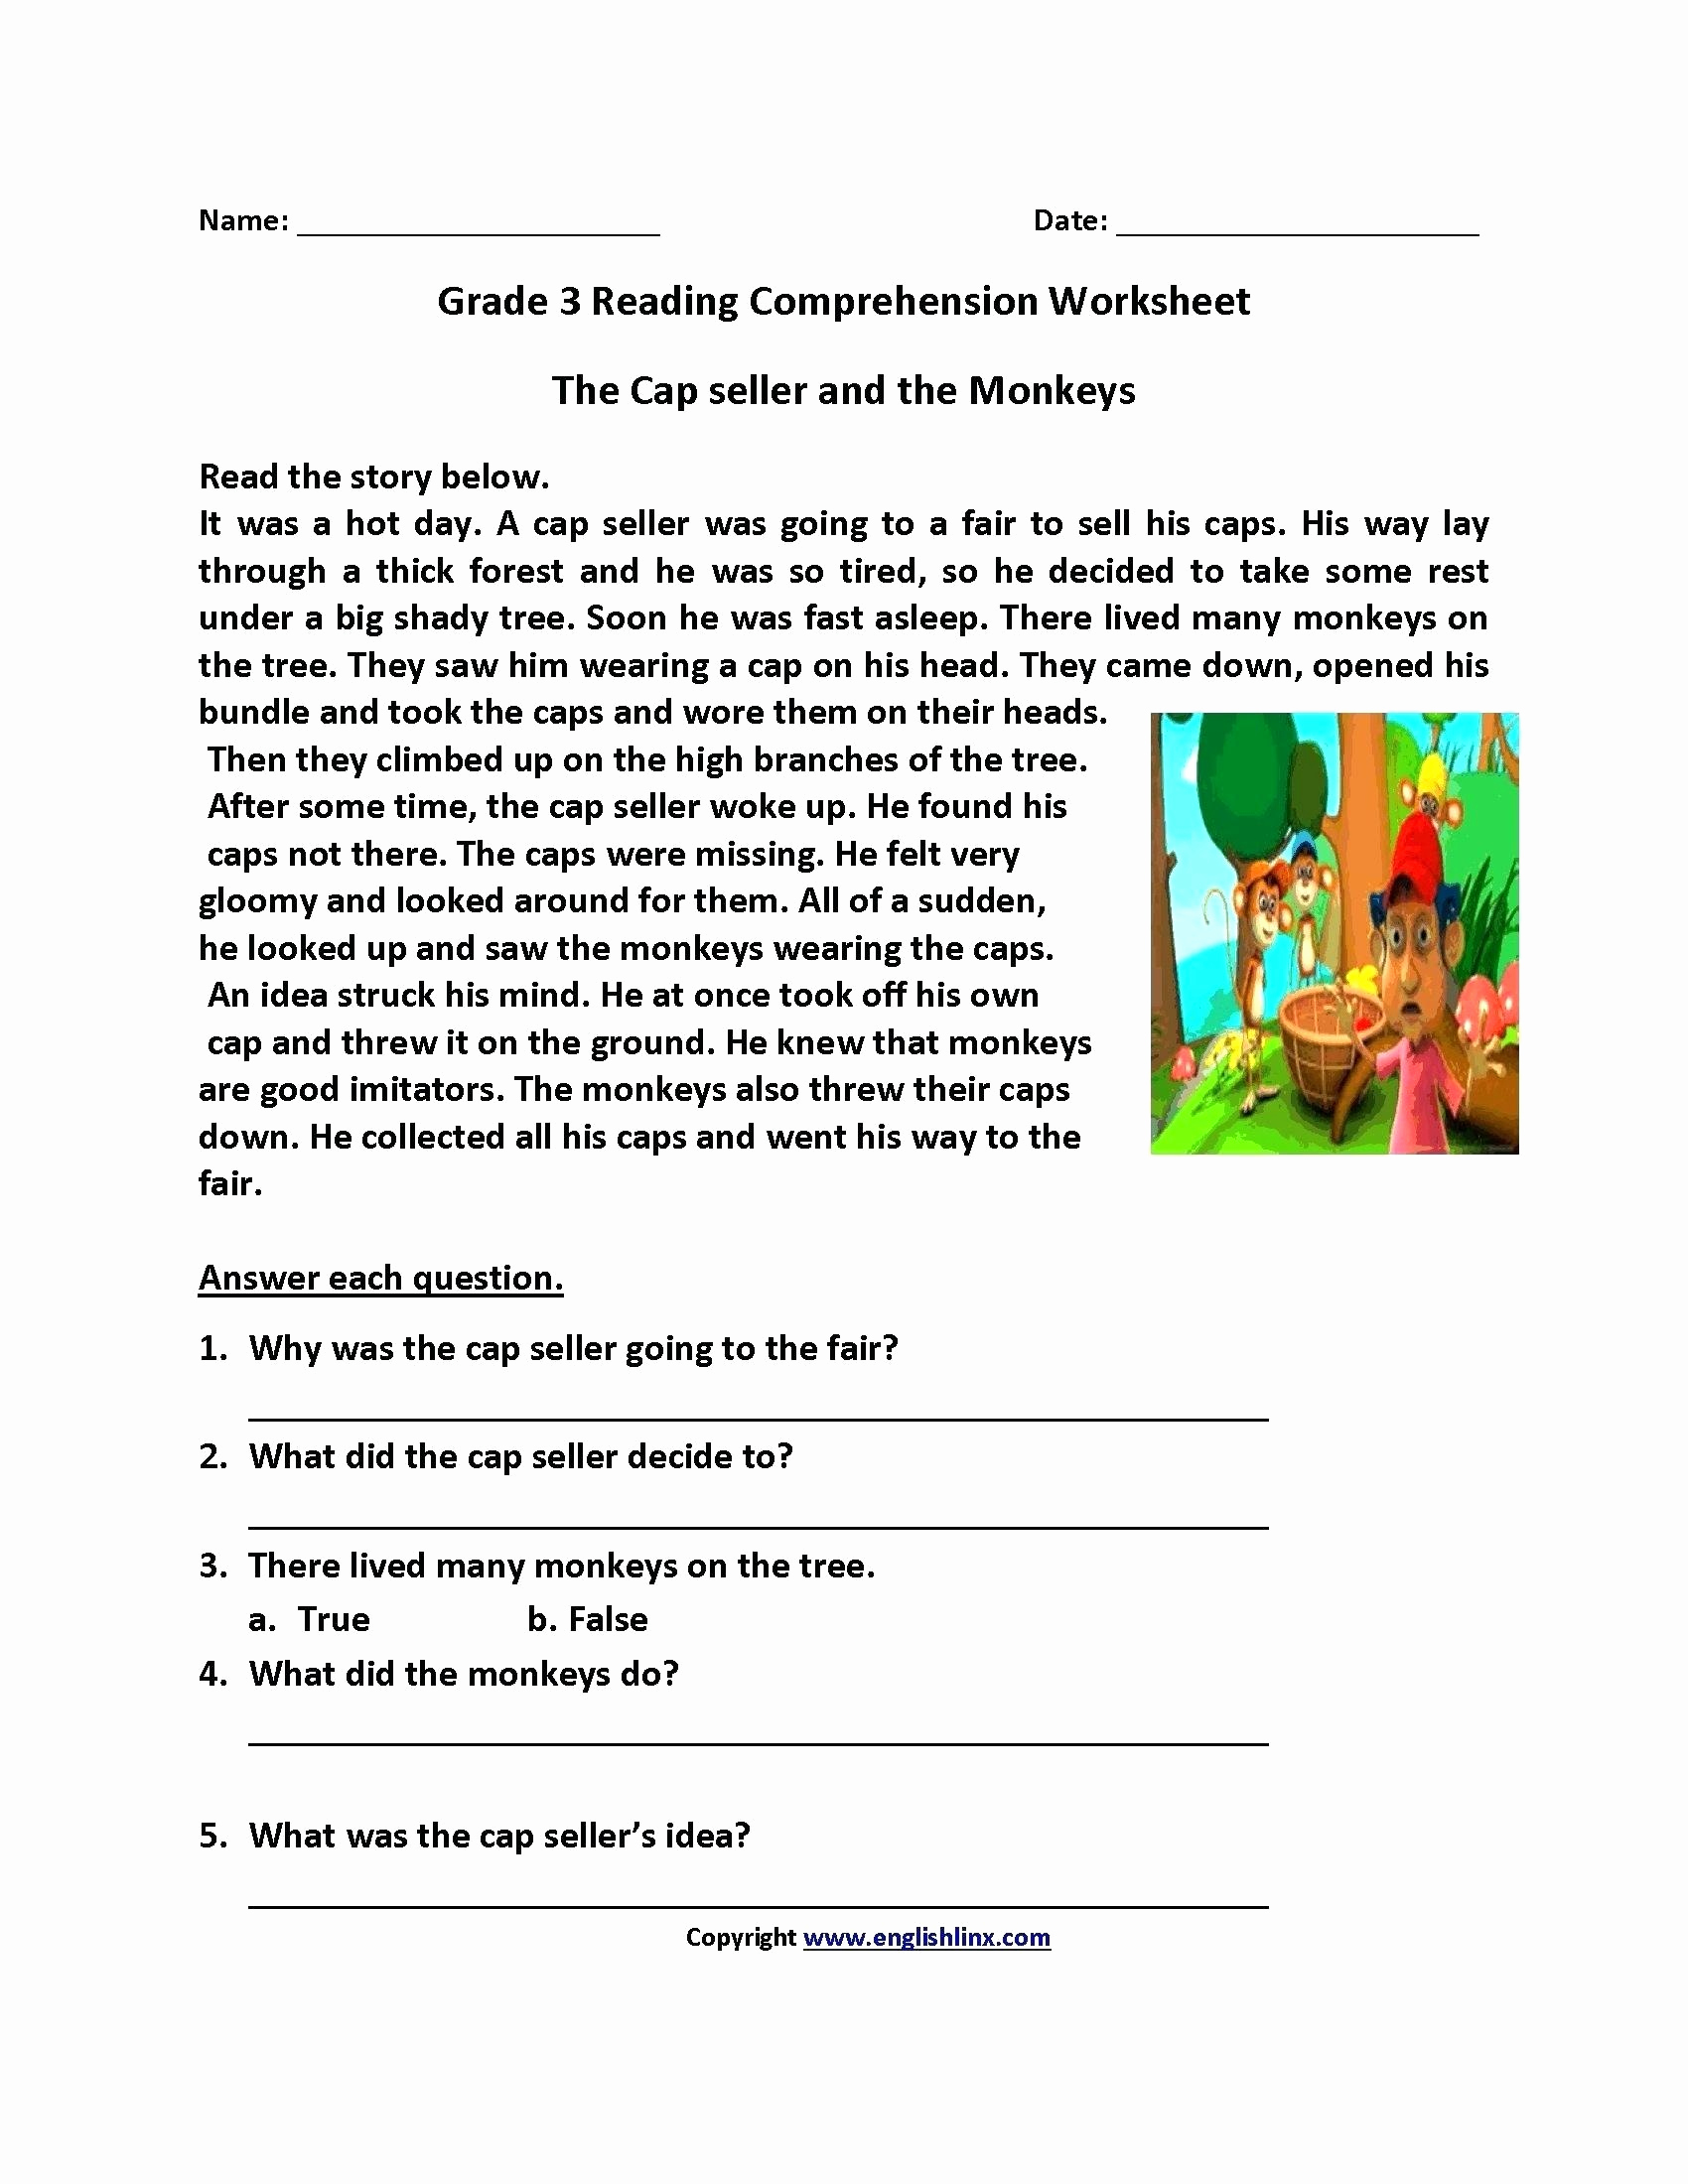 Proofreading Worksheets 3rd Grade Awesome Third Grade Reading Worksheets Free Printable